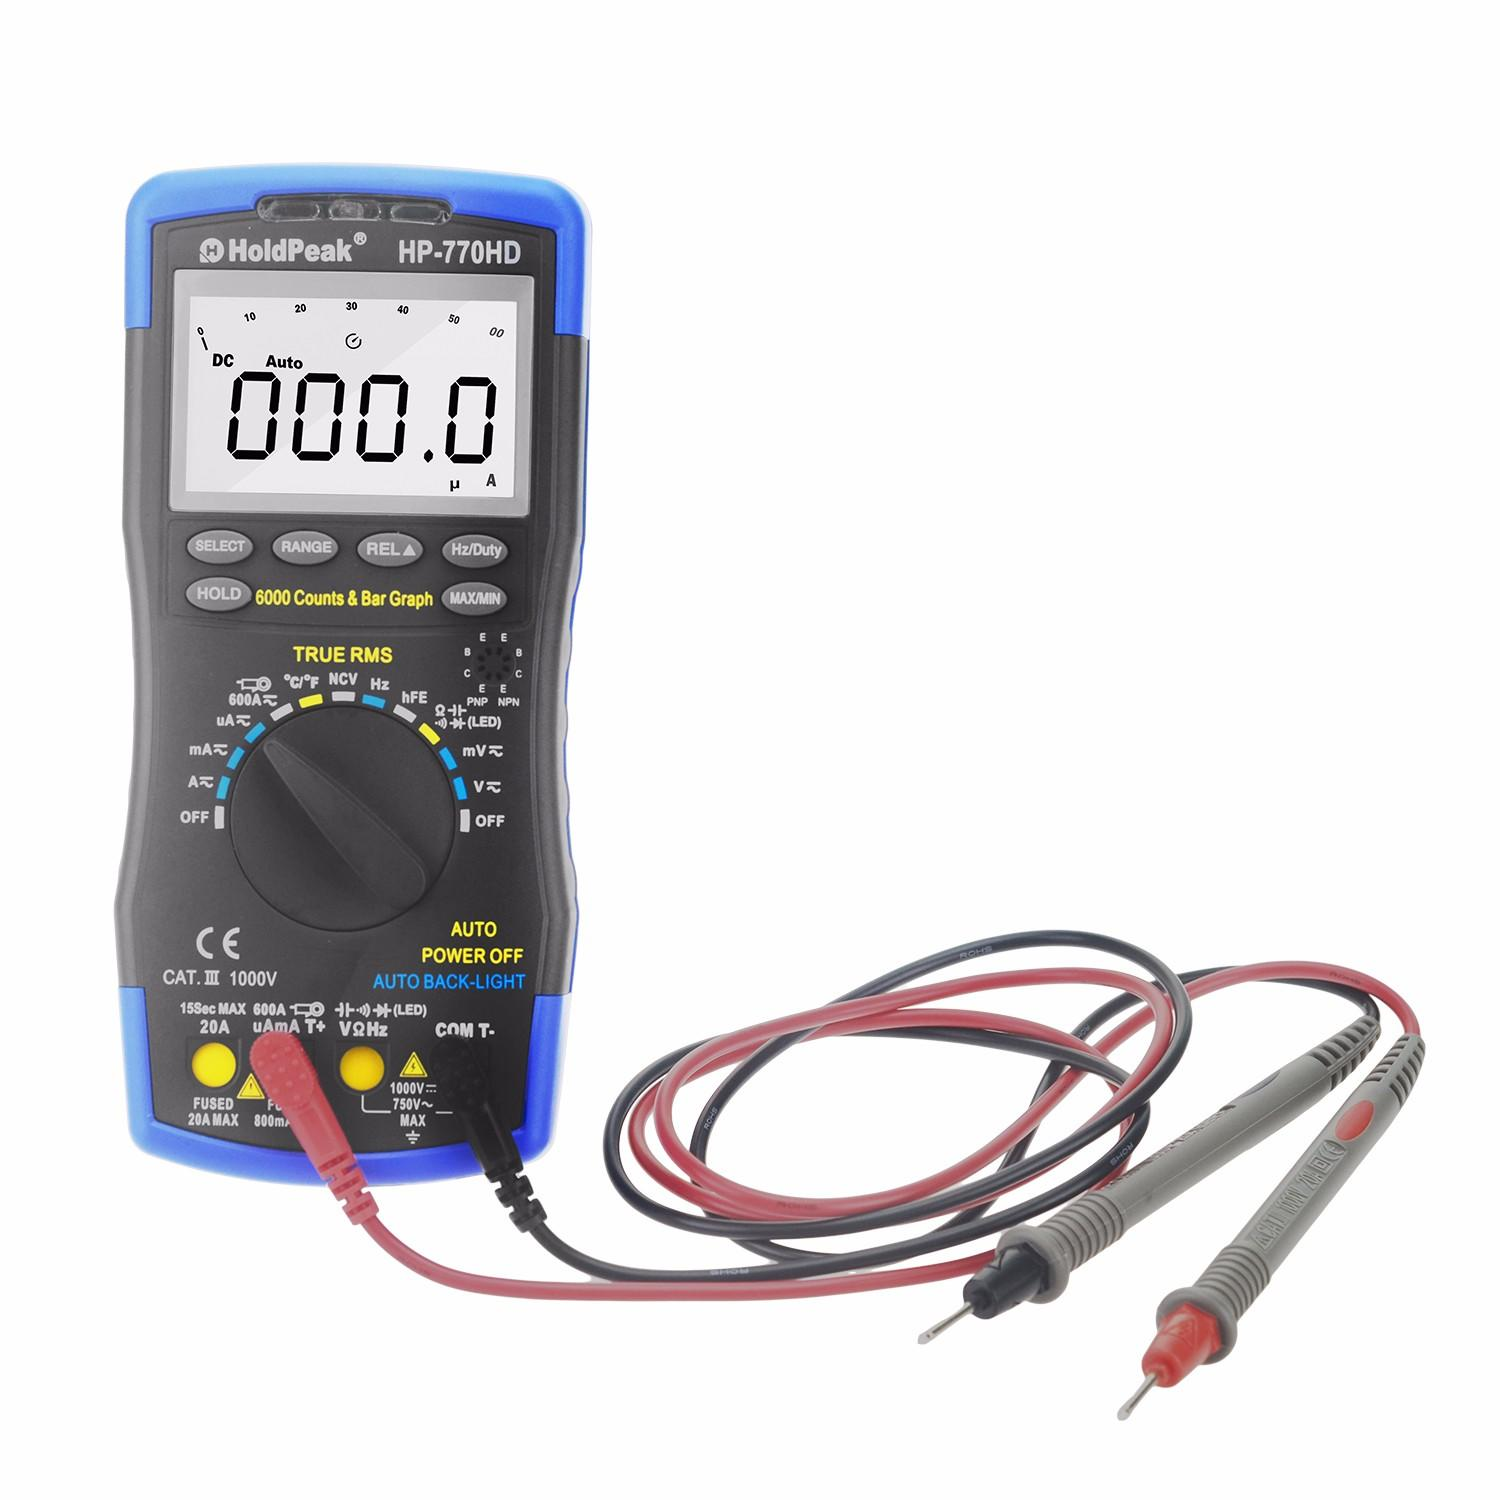 HoldPeak rms digital multimeter manual company for electronic-1